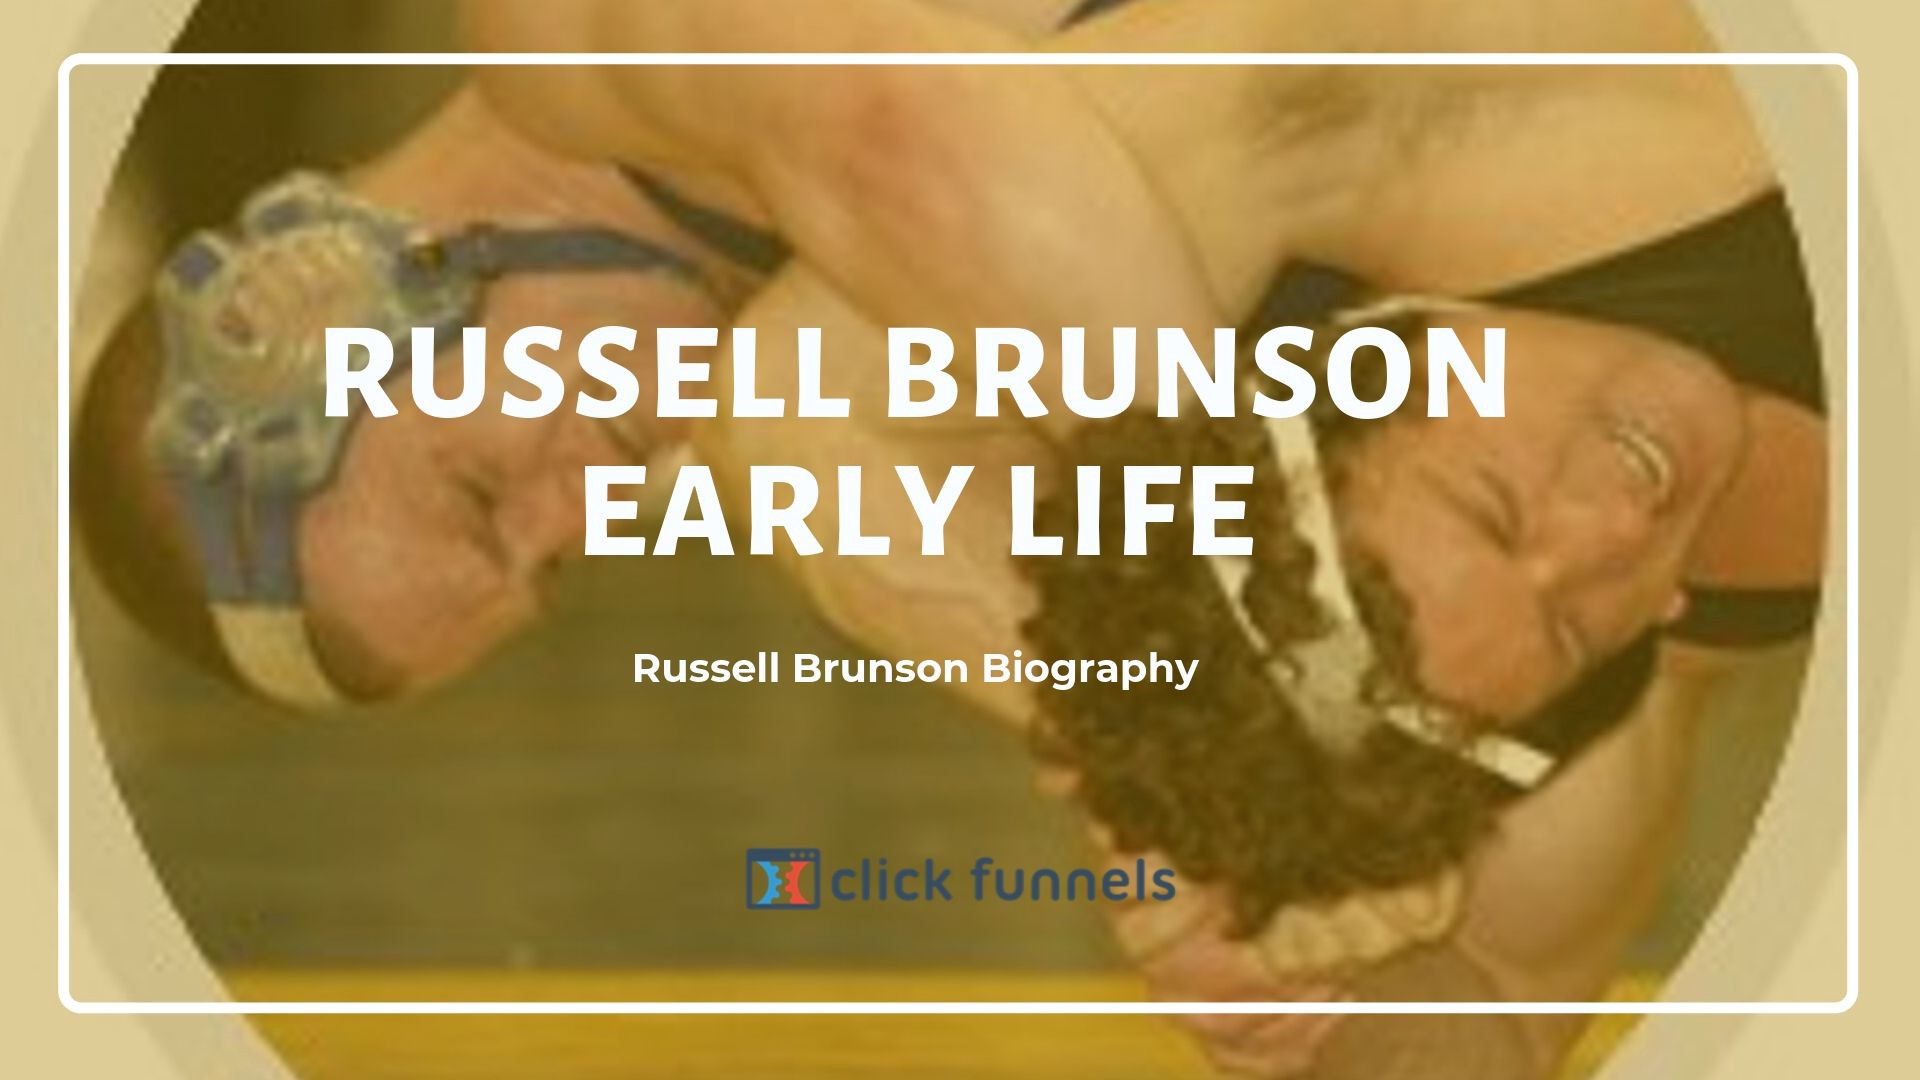 A biography of Russell Brunson`s early life and history